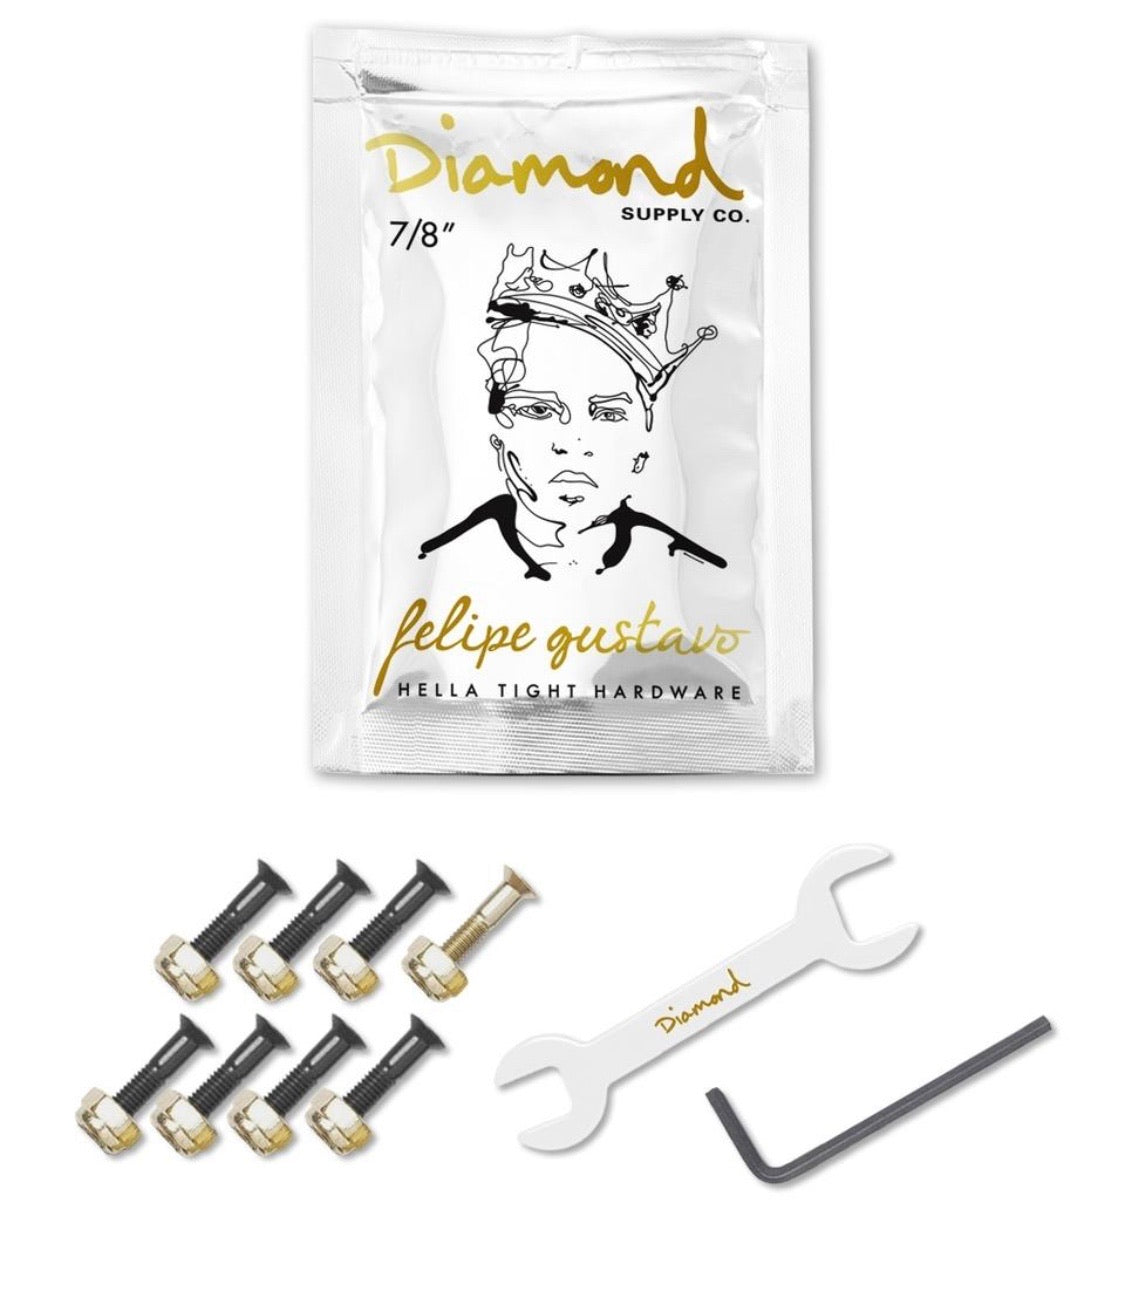 Diamond Hardware - Felipe Gustavo